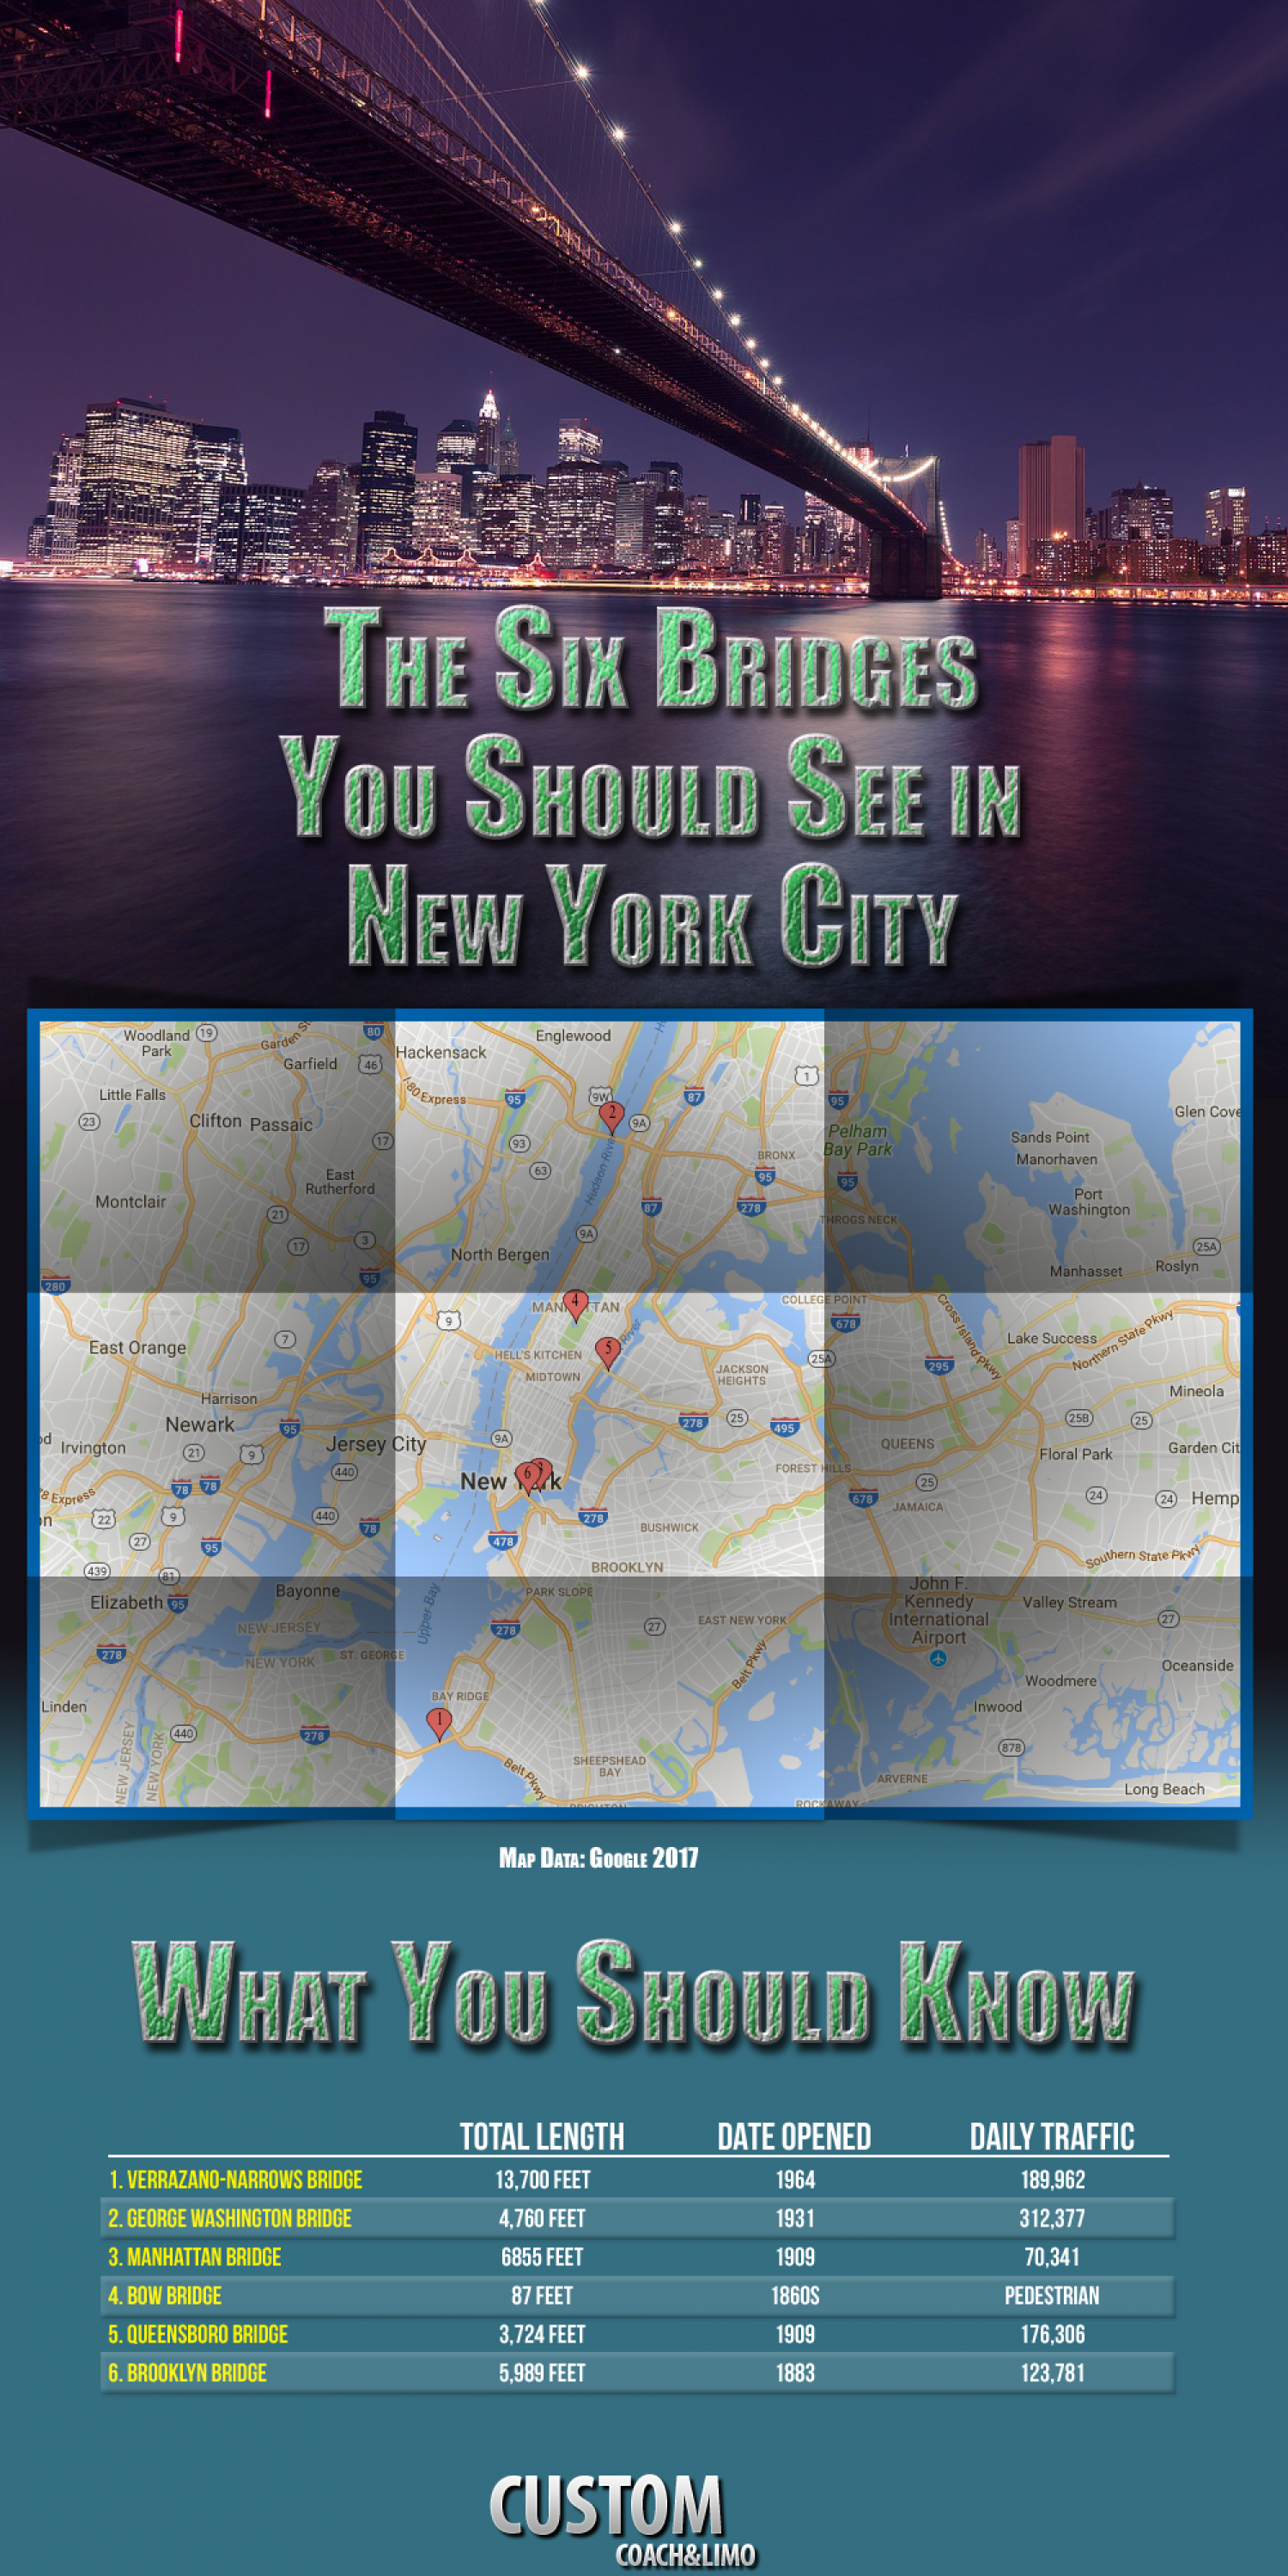 The Six Bridges You Should Visit in New York City Infographic